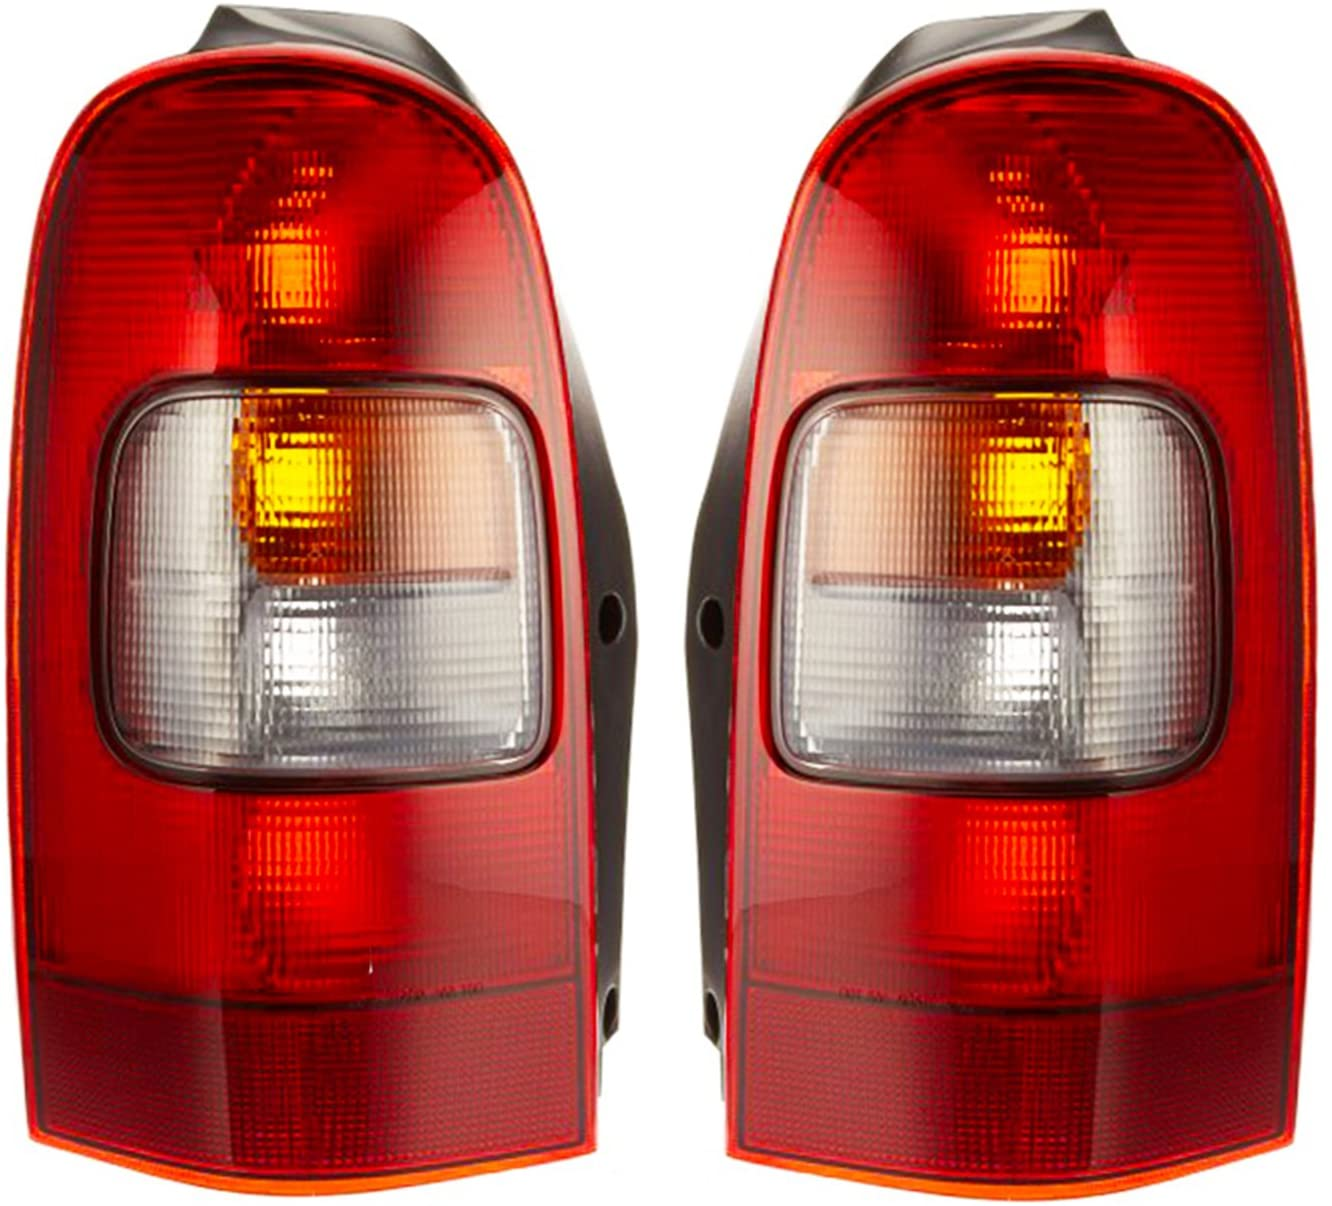 Rareelectrical NEW PAIR OF TAIL LIGHTS COMPATIBLE WITH CHEVROLET VENTURE 1997-2005 GM2801134 GM2800134 19206745 19206746